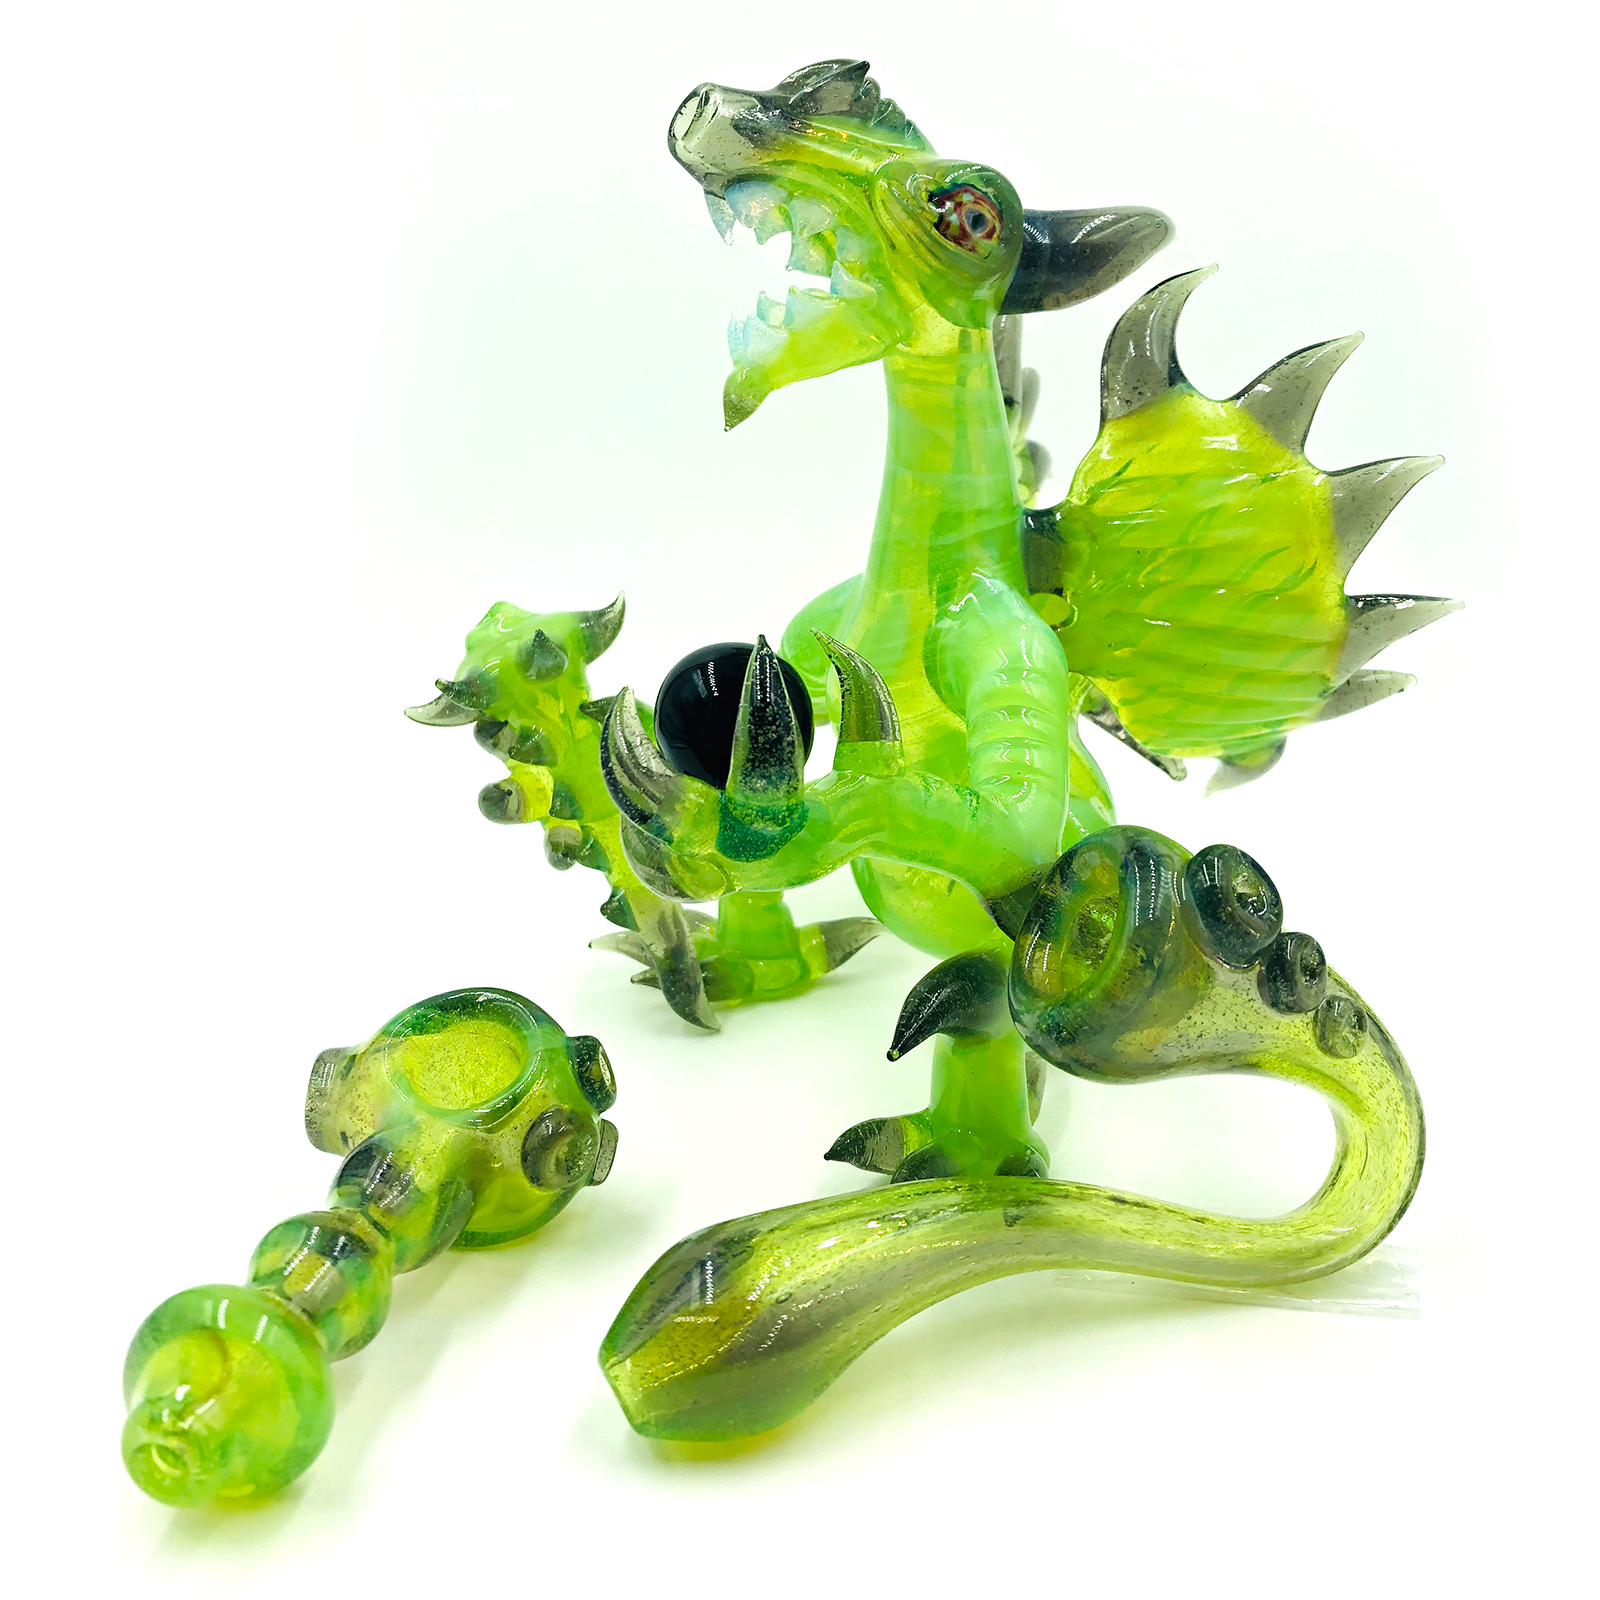 Dragon Rig Full Kit w/ Case by @Boss_Glass